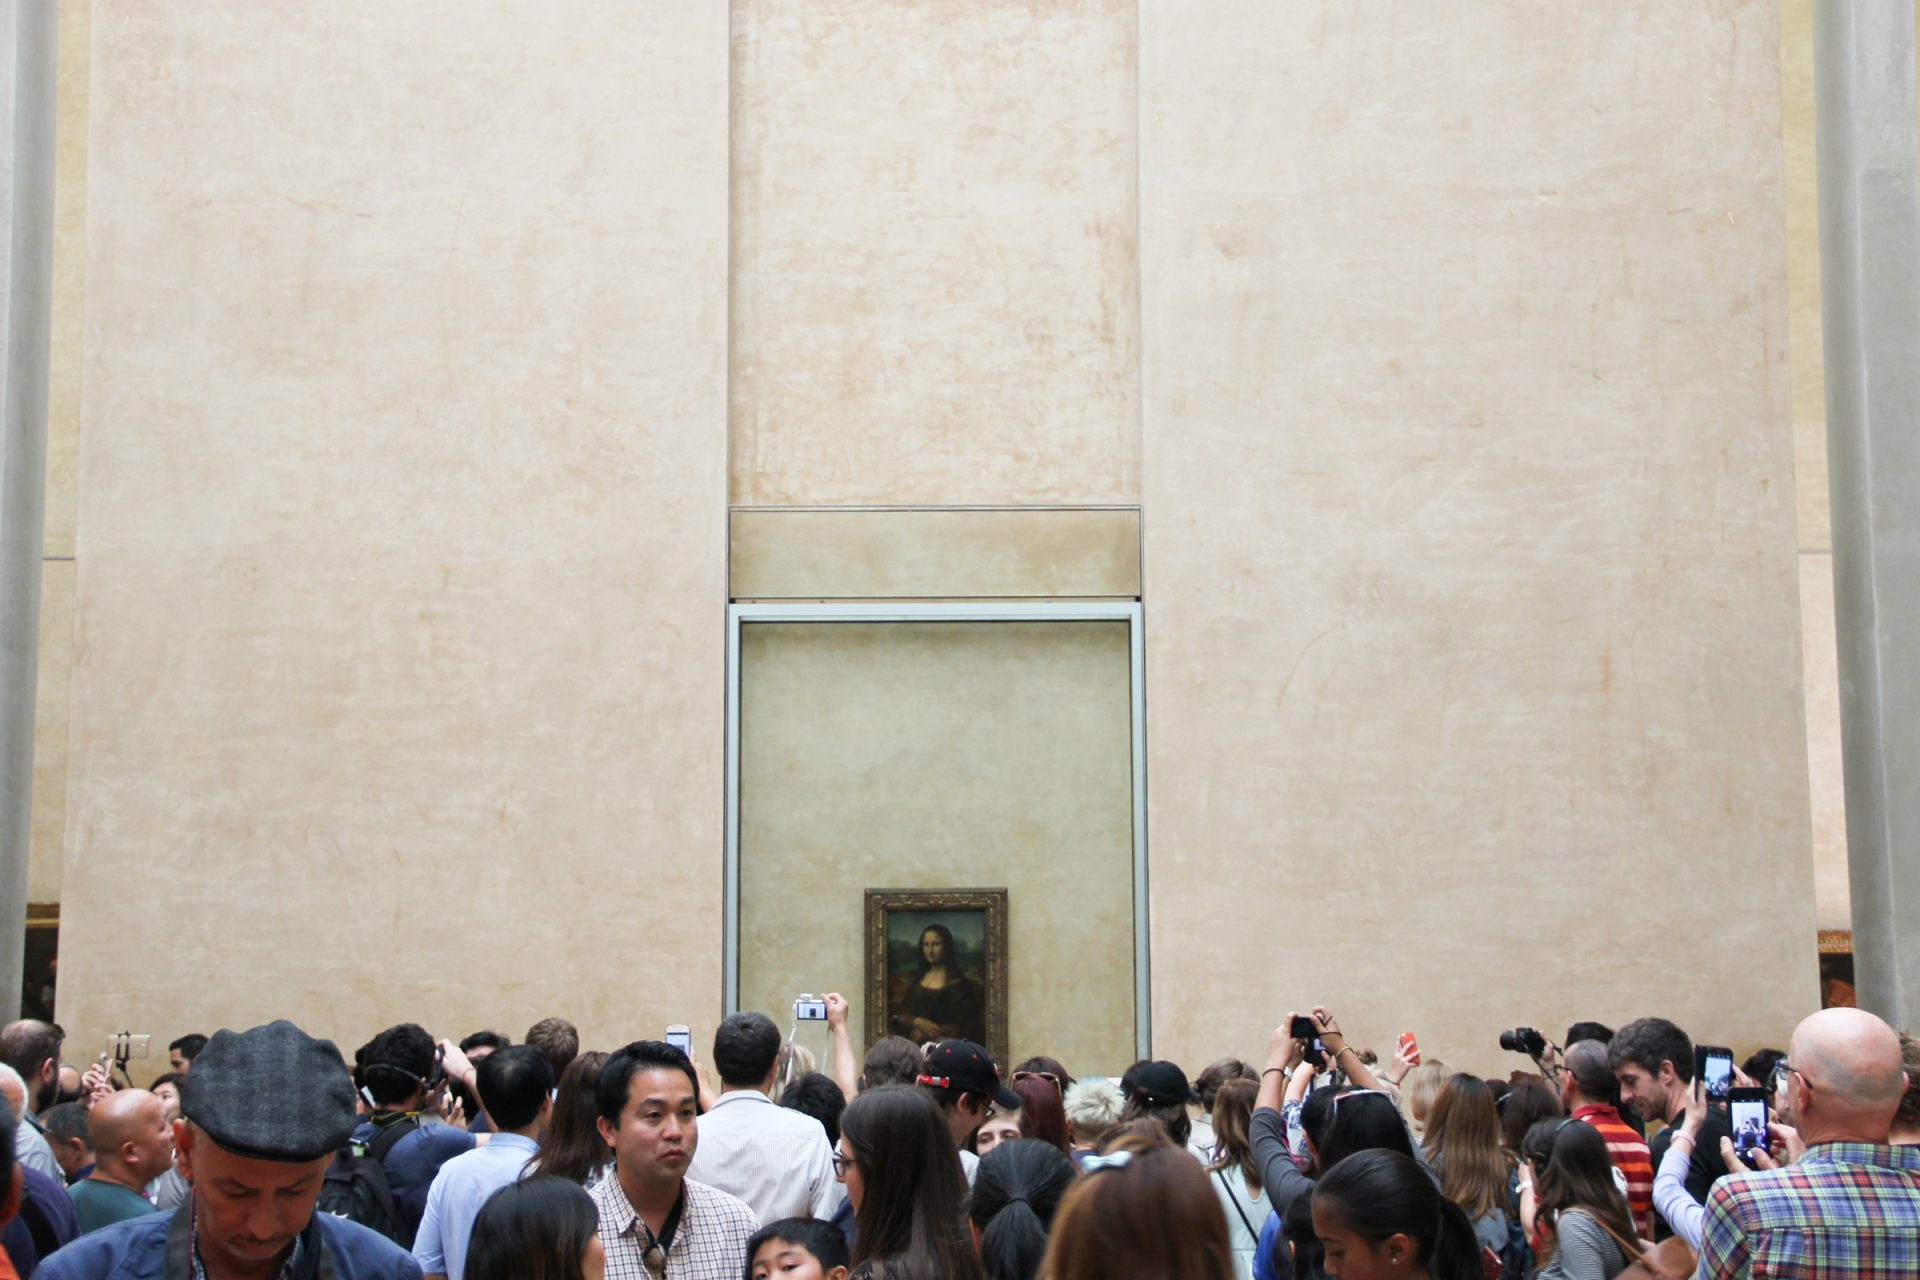 Crowd Taking Pictures Of Mona Lisa Painting